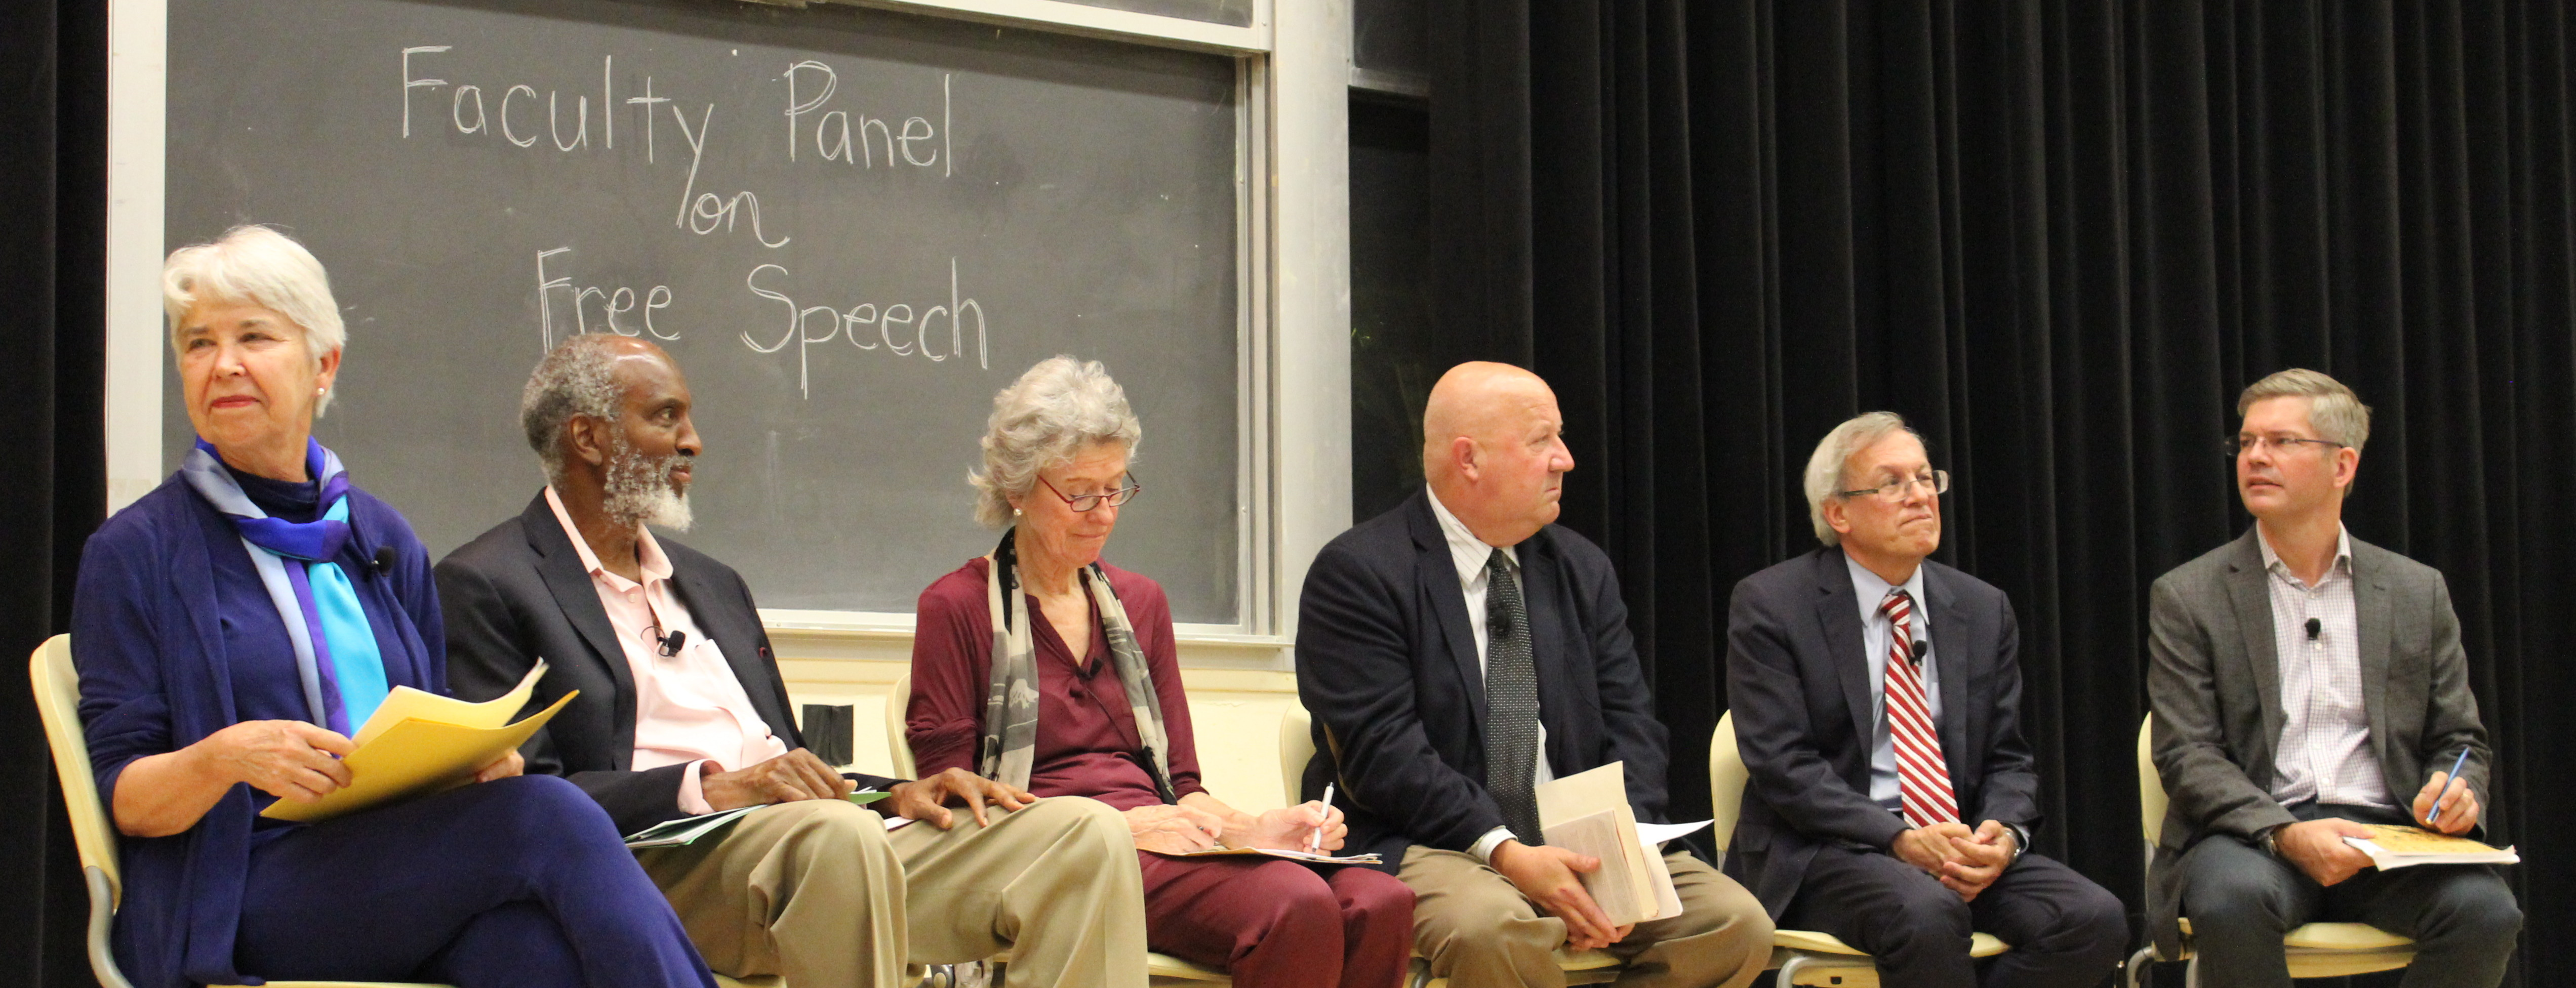 Faculty panel on free speech